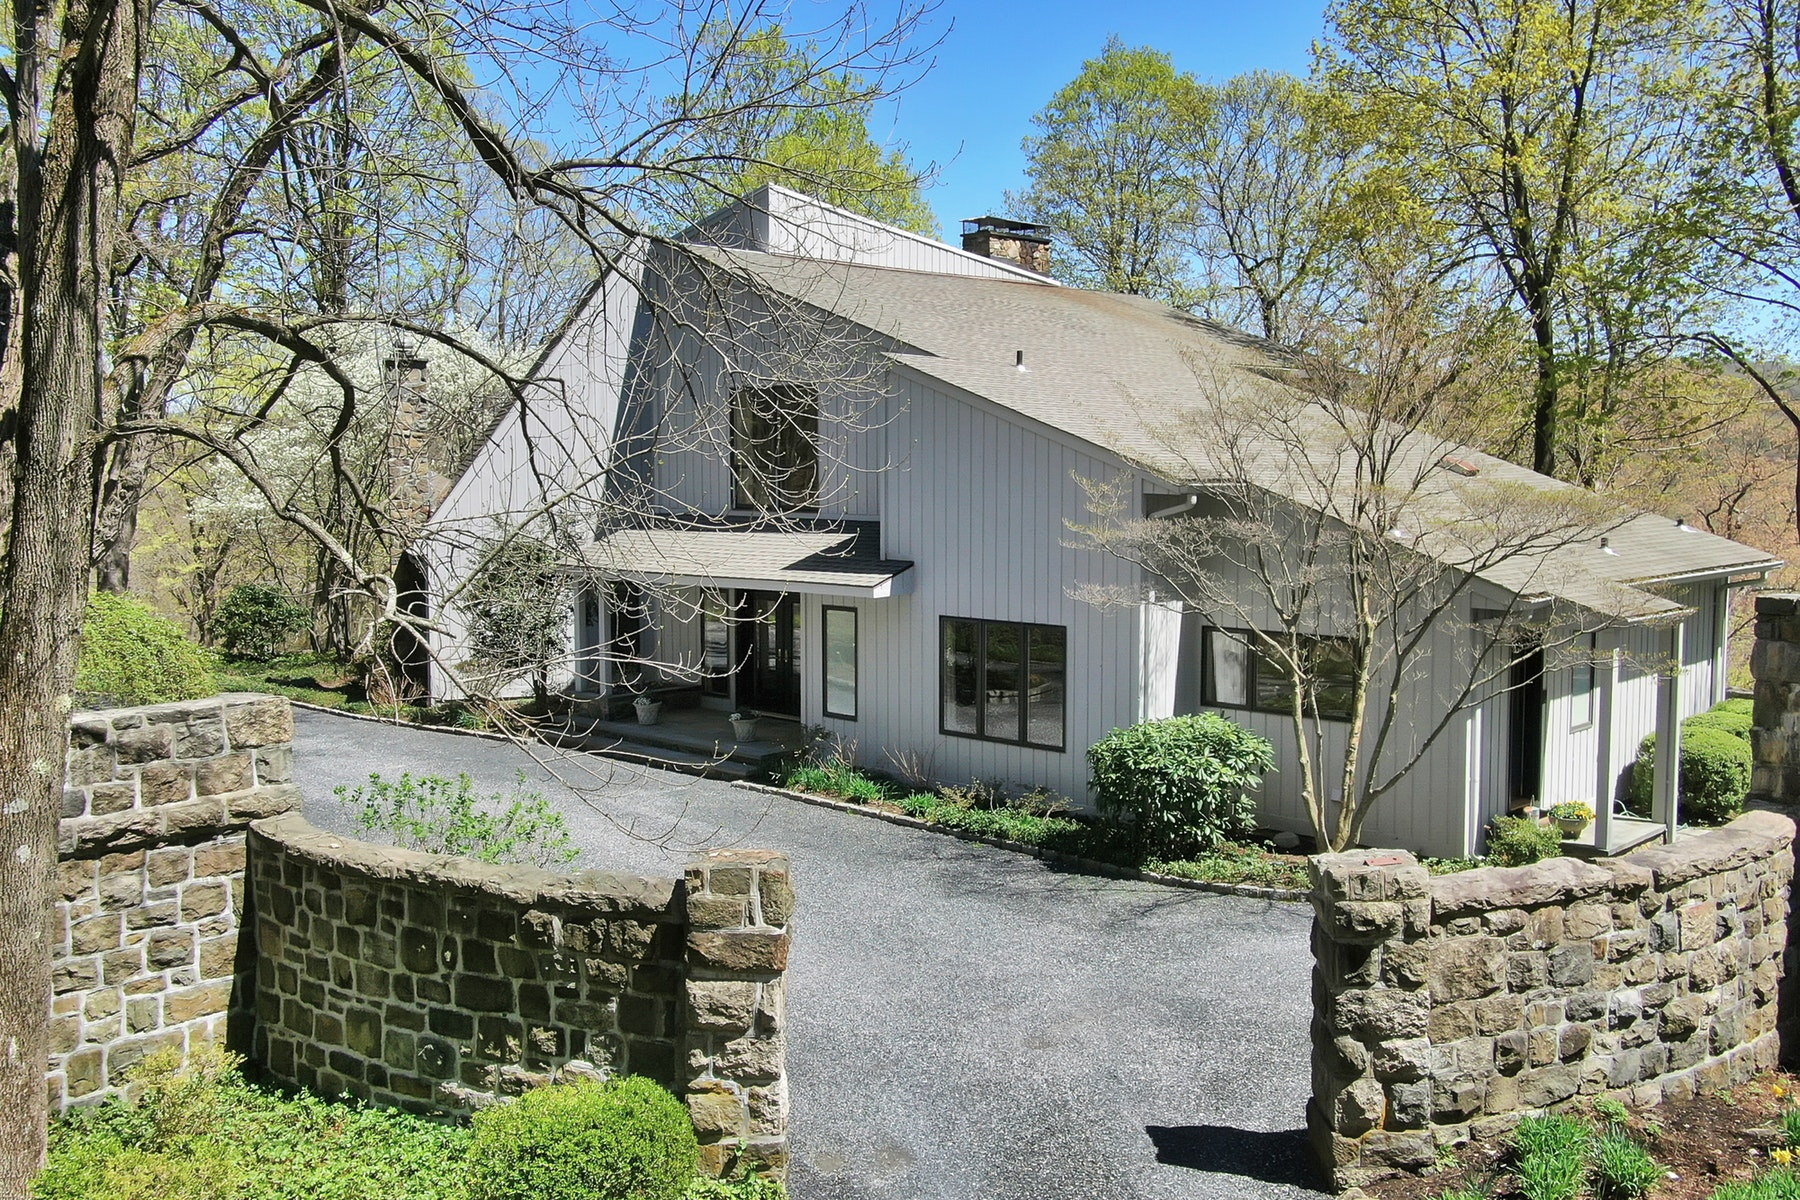 Single Family Homes for Sale at Four Seasons 57 Lookout Road Tuxedo Park, New York 10987 United States